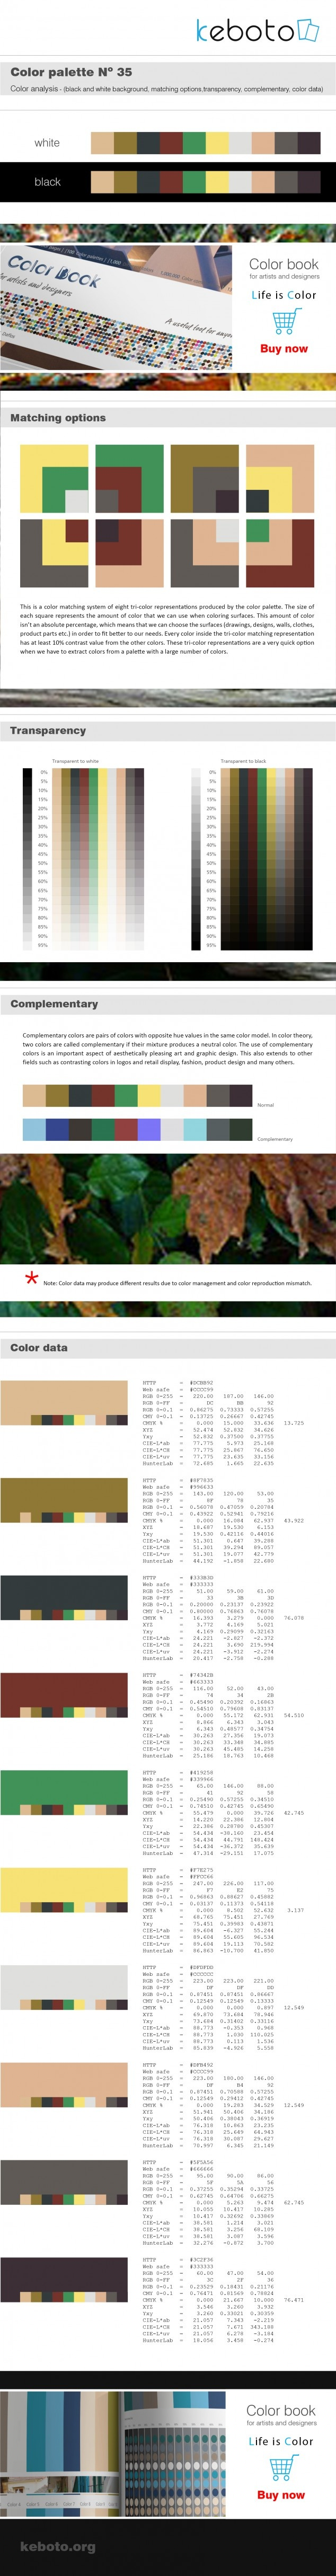 Keboto - Color Palette Νο35